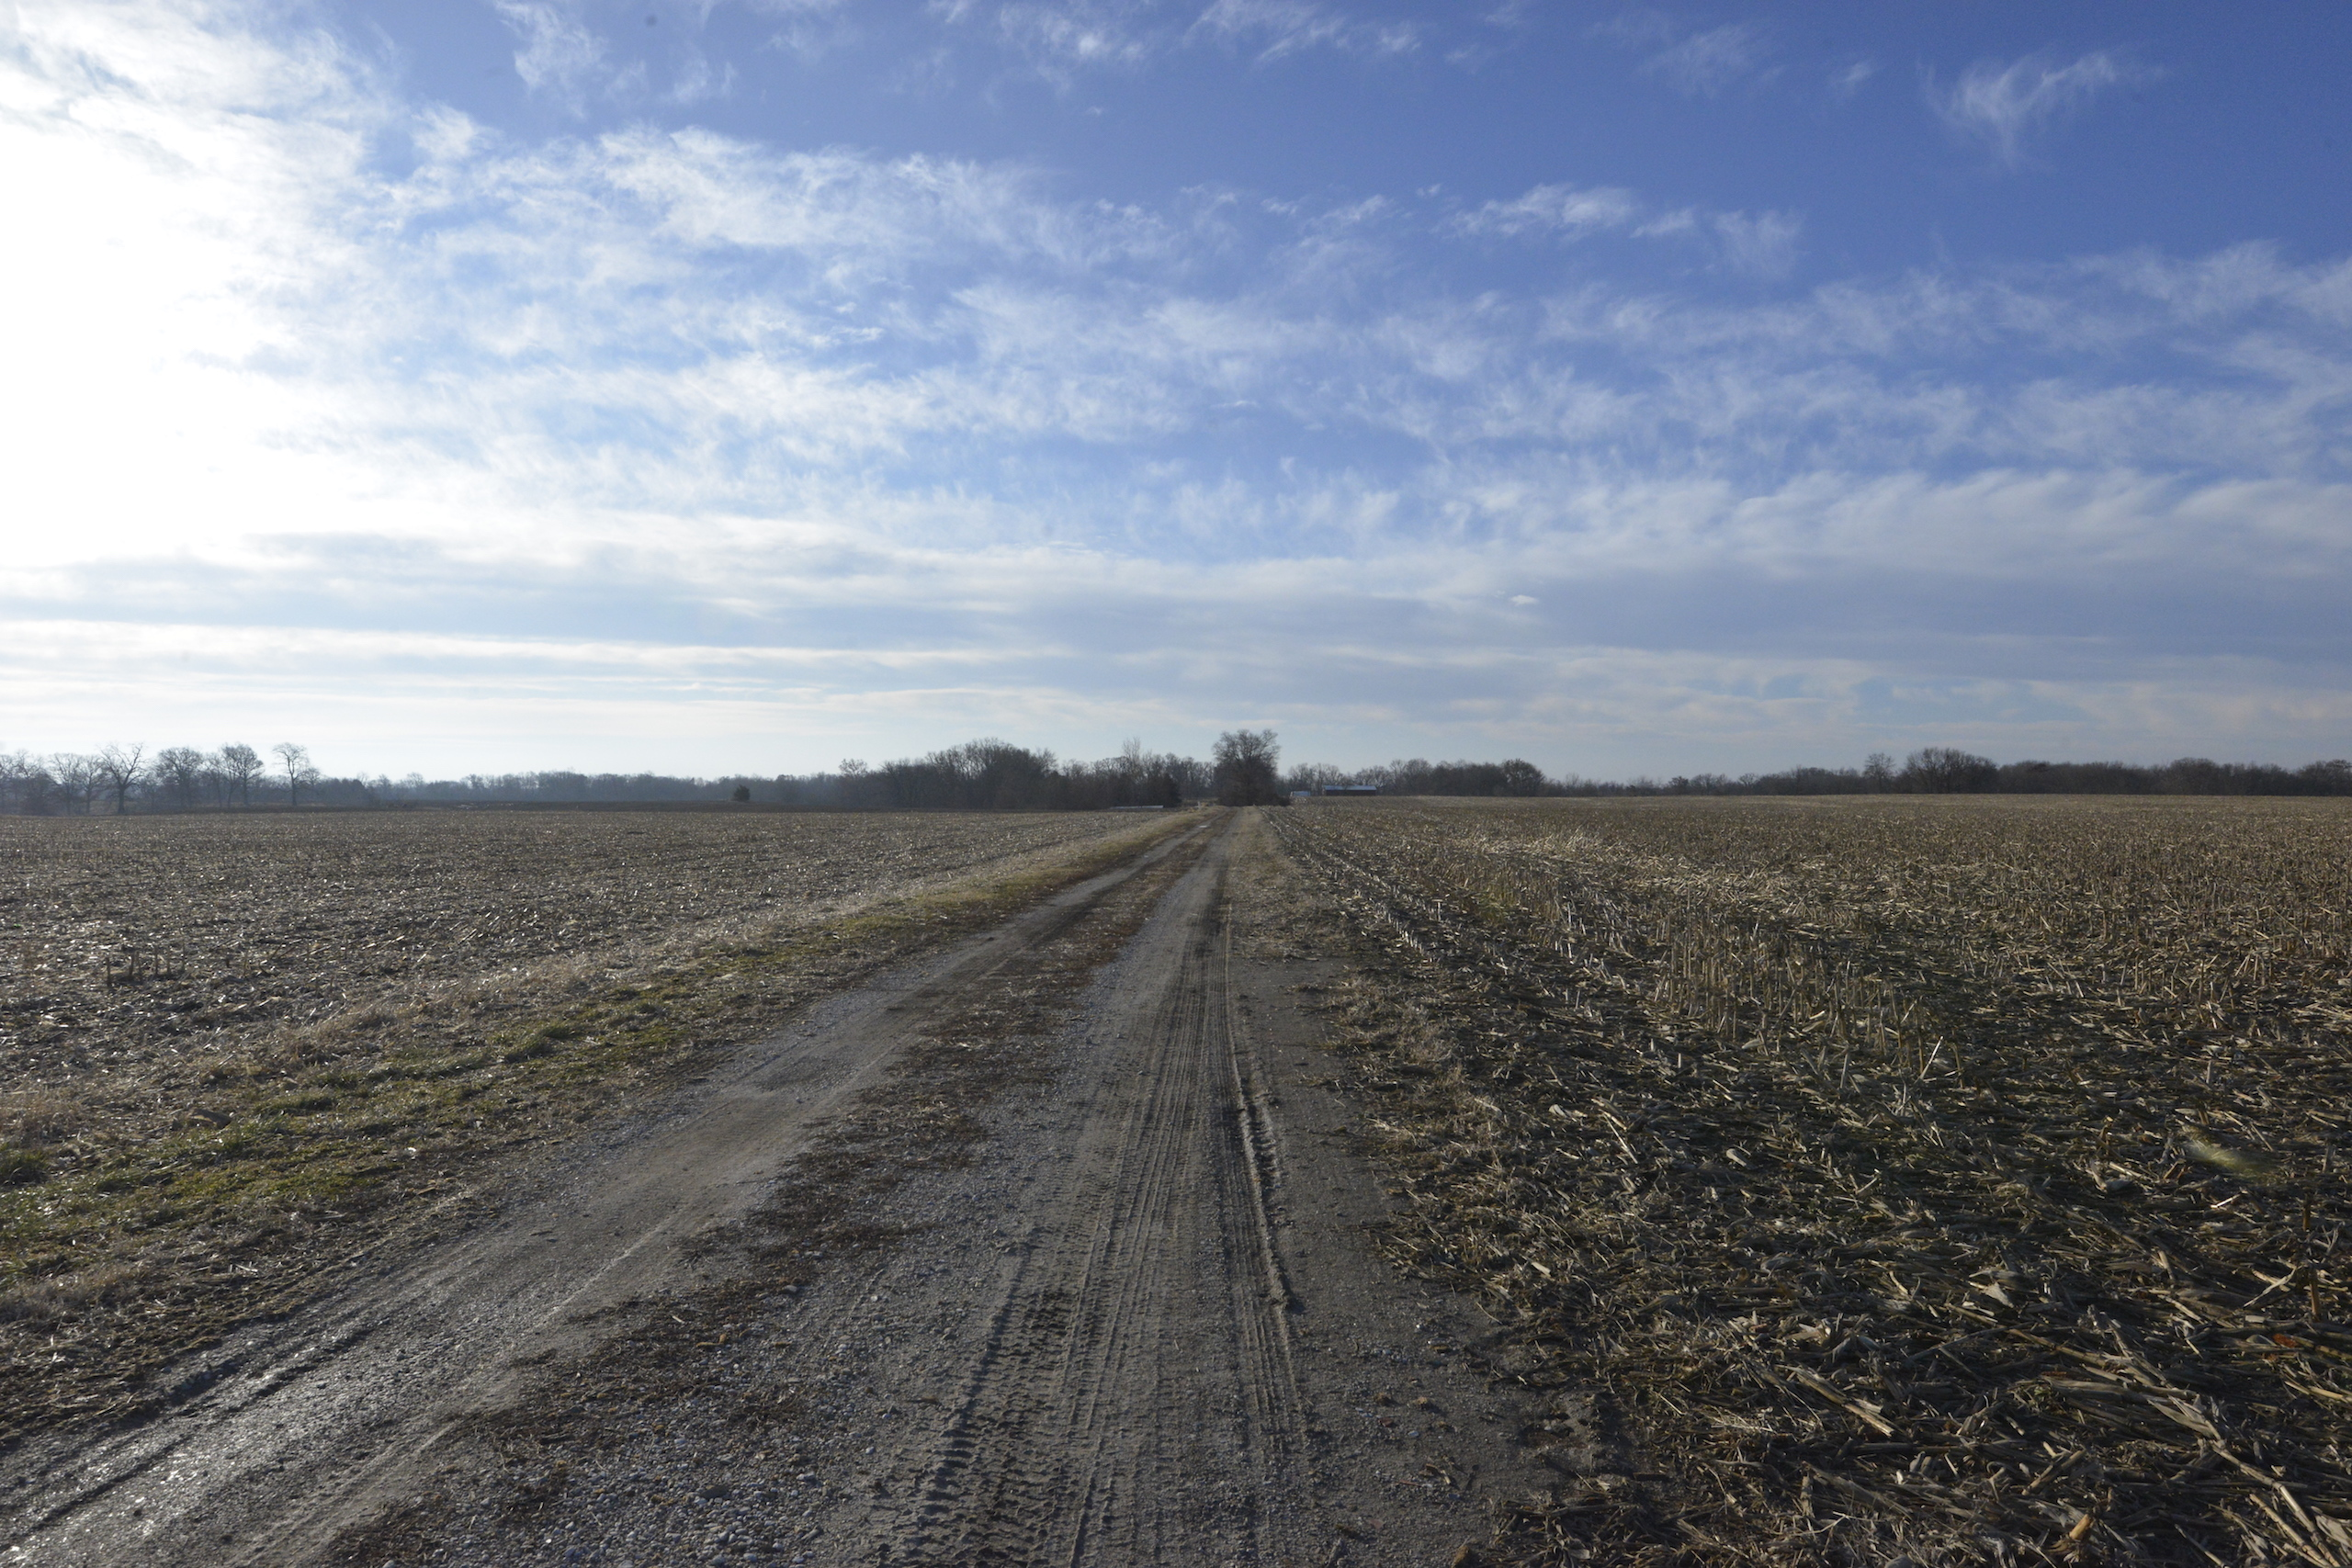 Brown Il Tract 1 36 0642